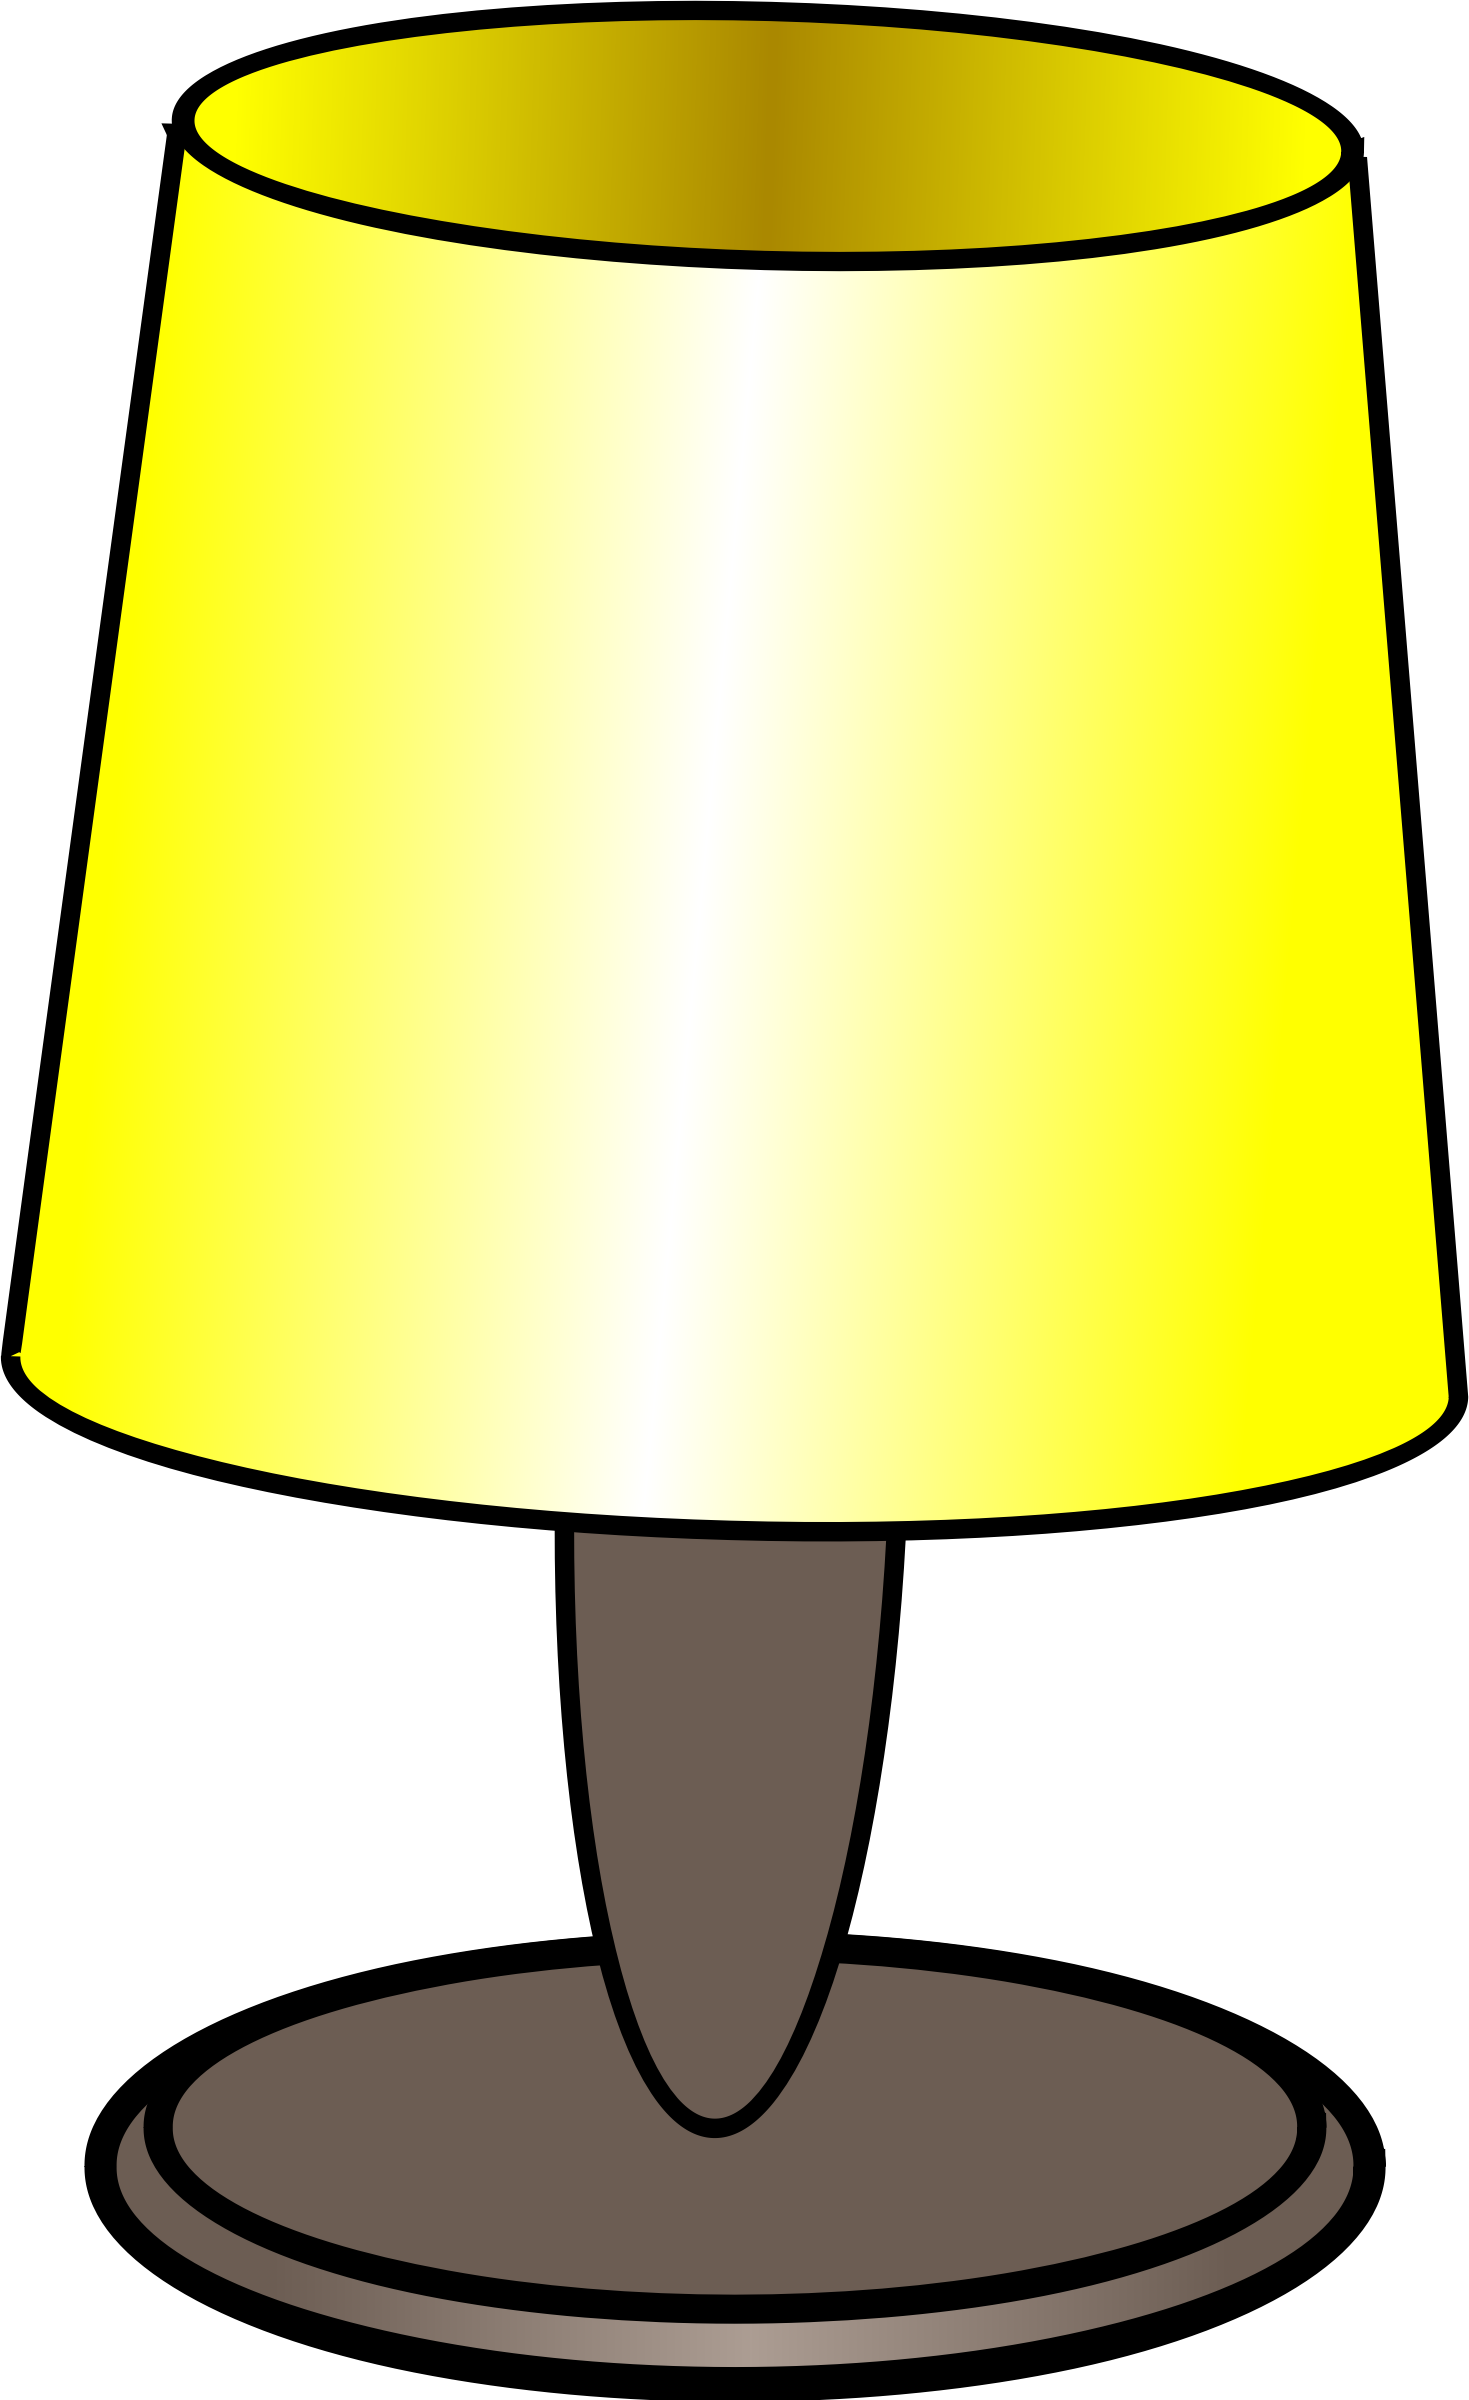 Table Lamp Clipart free image.